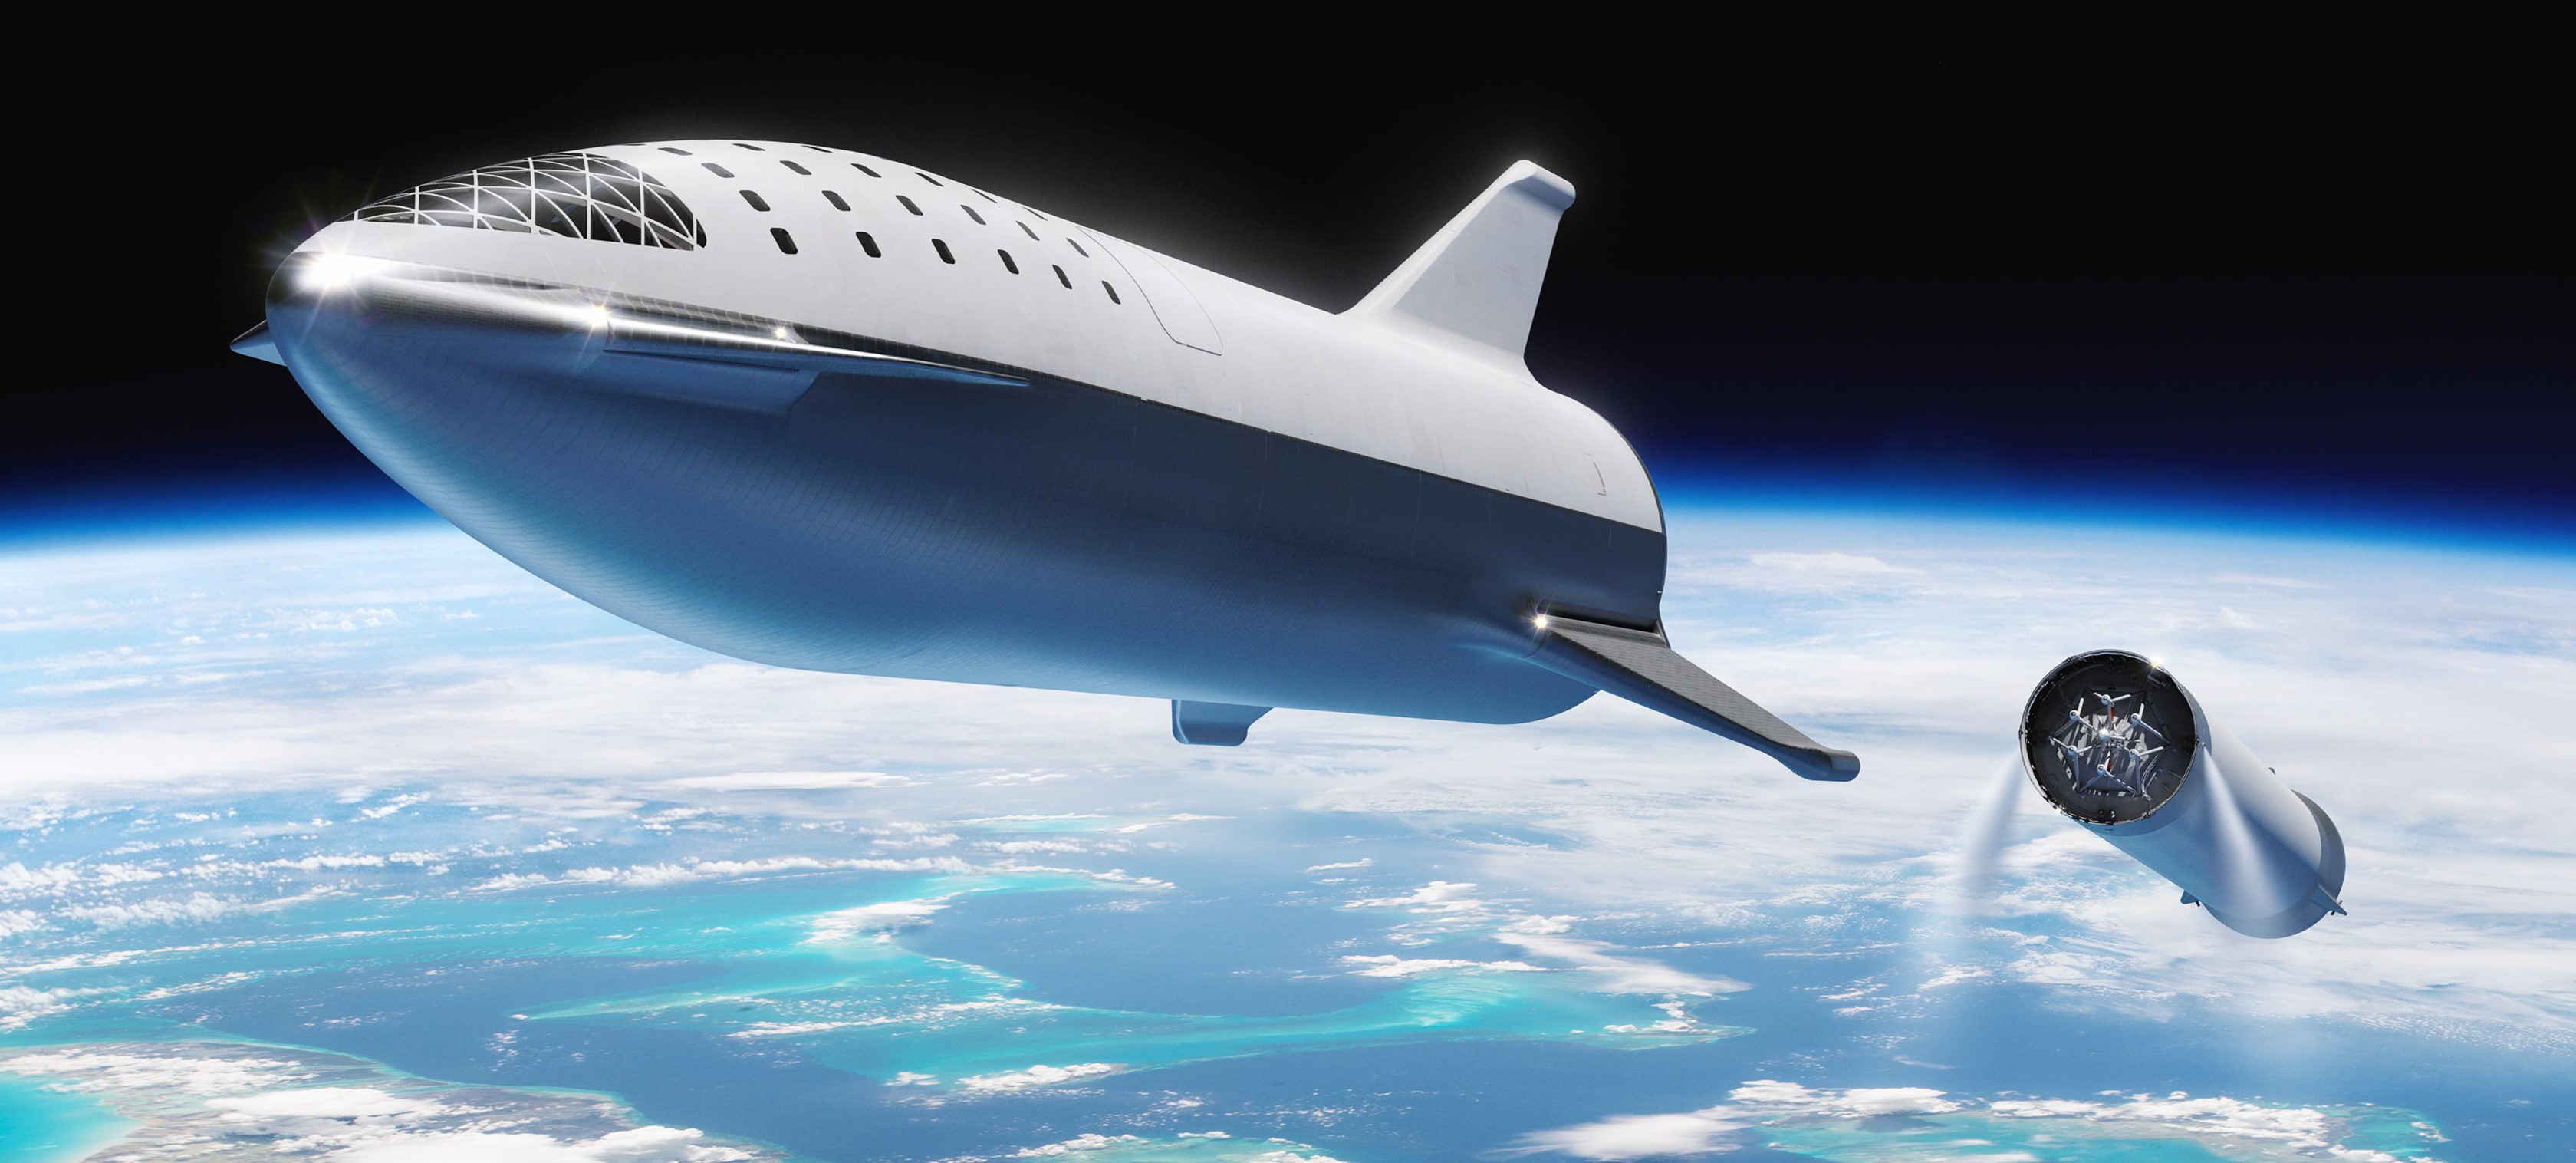 Spacex To Build Small Version Of Bfr S Spaceship For Use